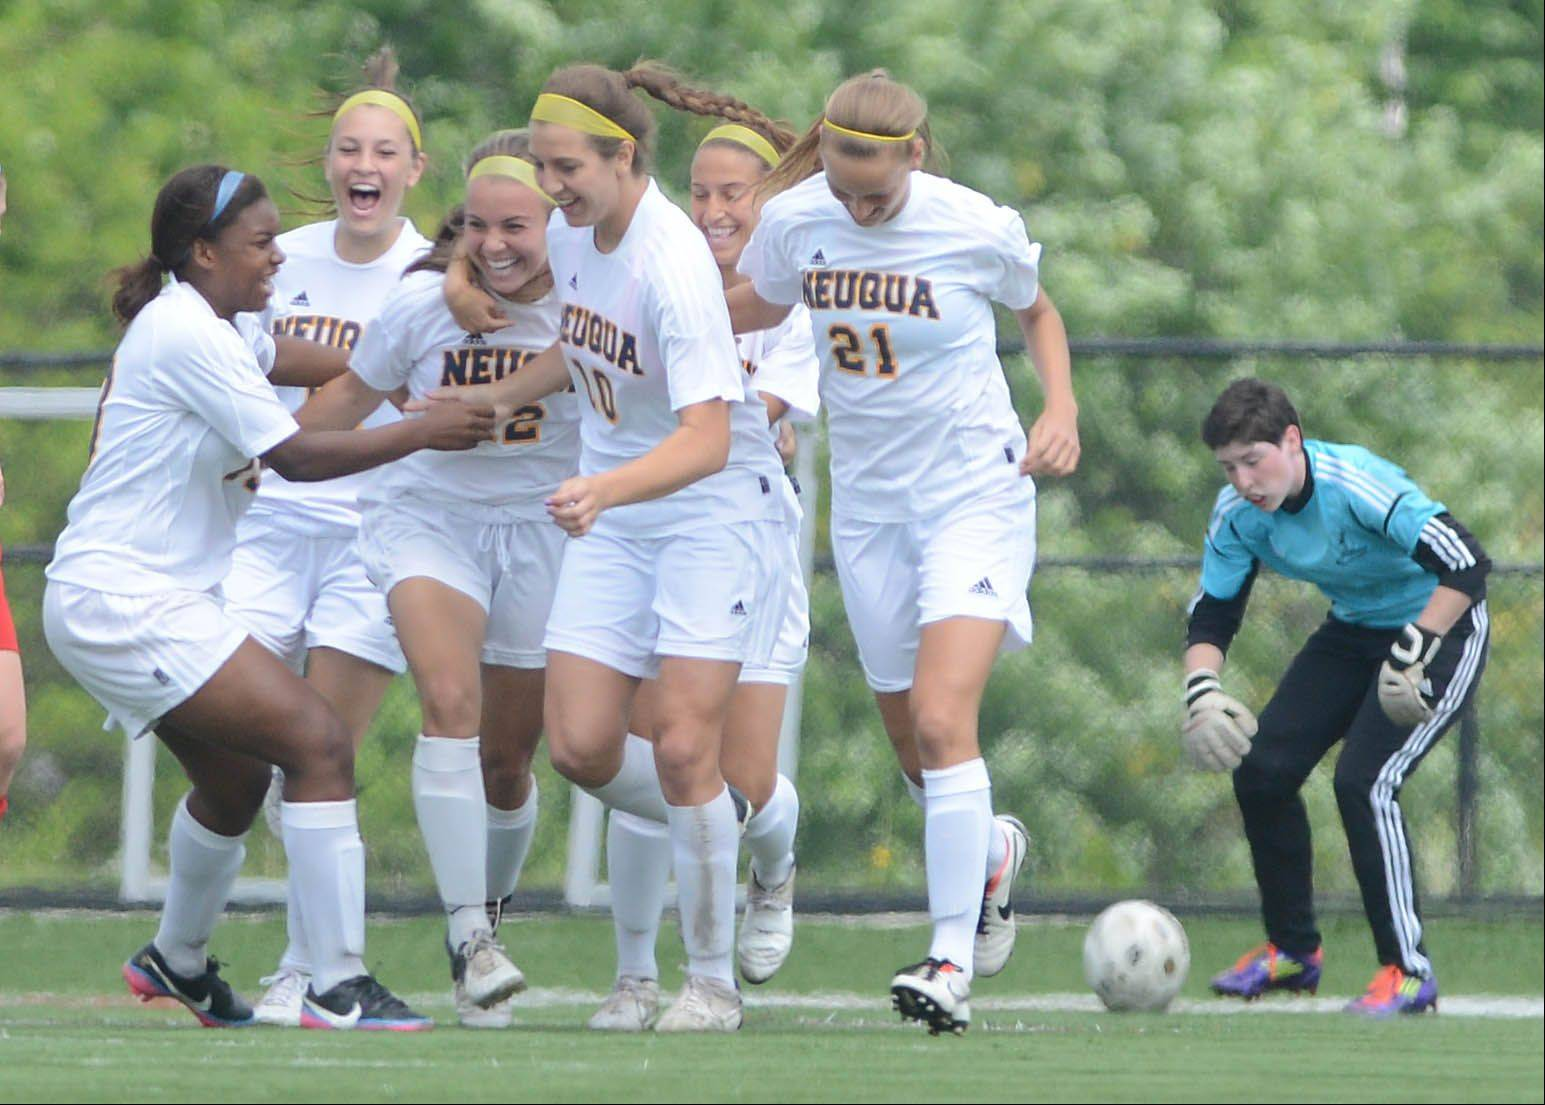 The Neuqua girls celebrate an early goal during the Class 3A Bolingbrook girls soccer regional final Saturday.